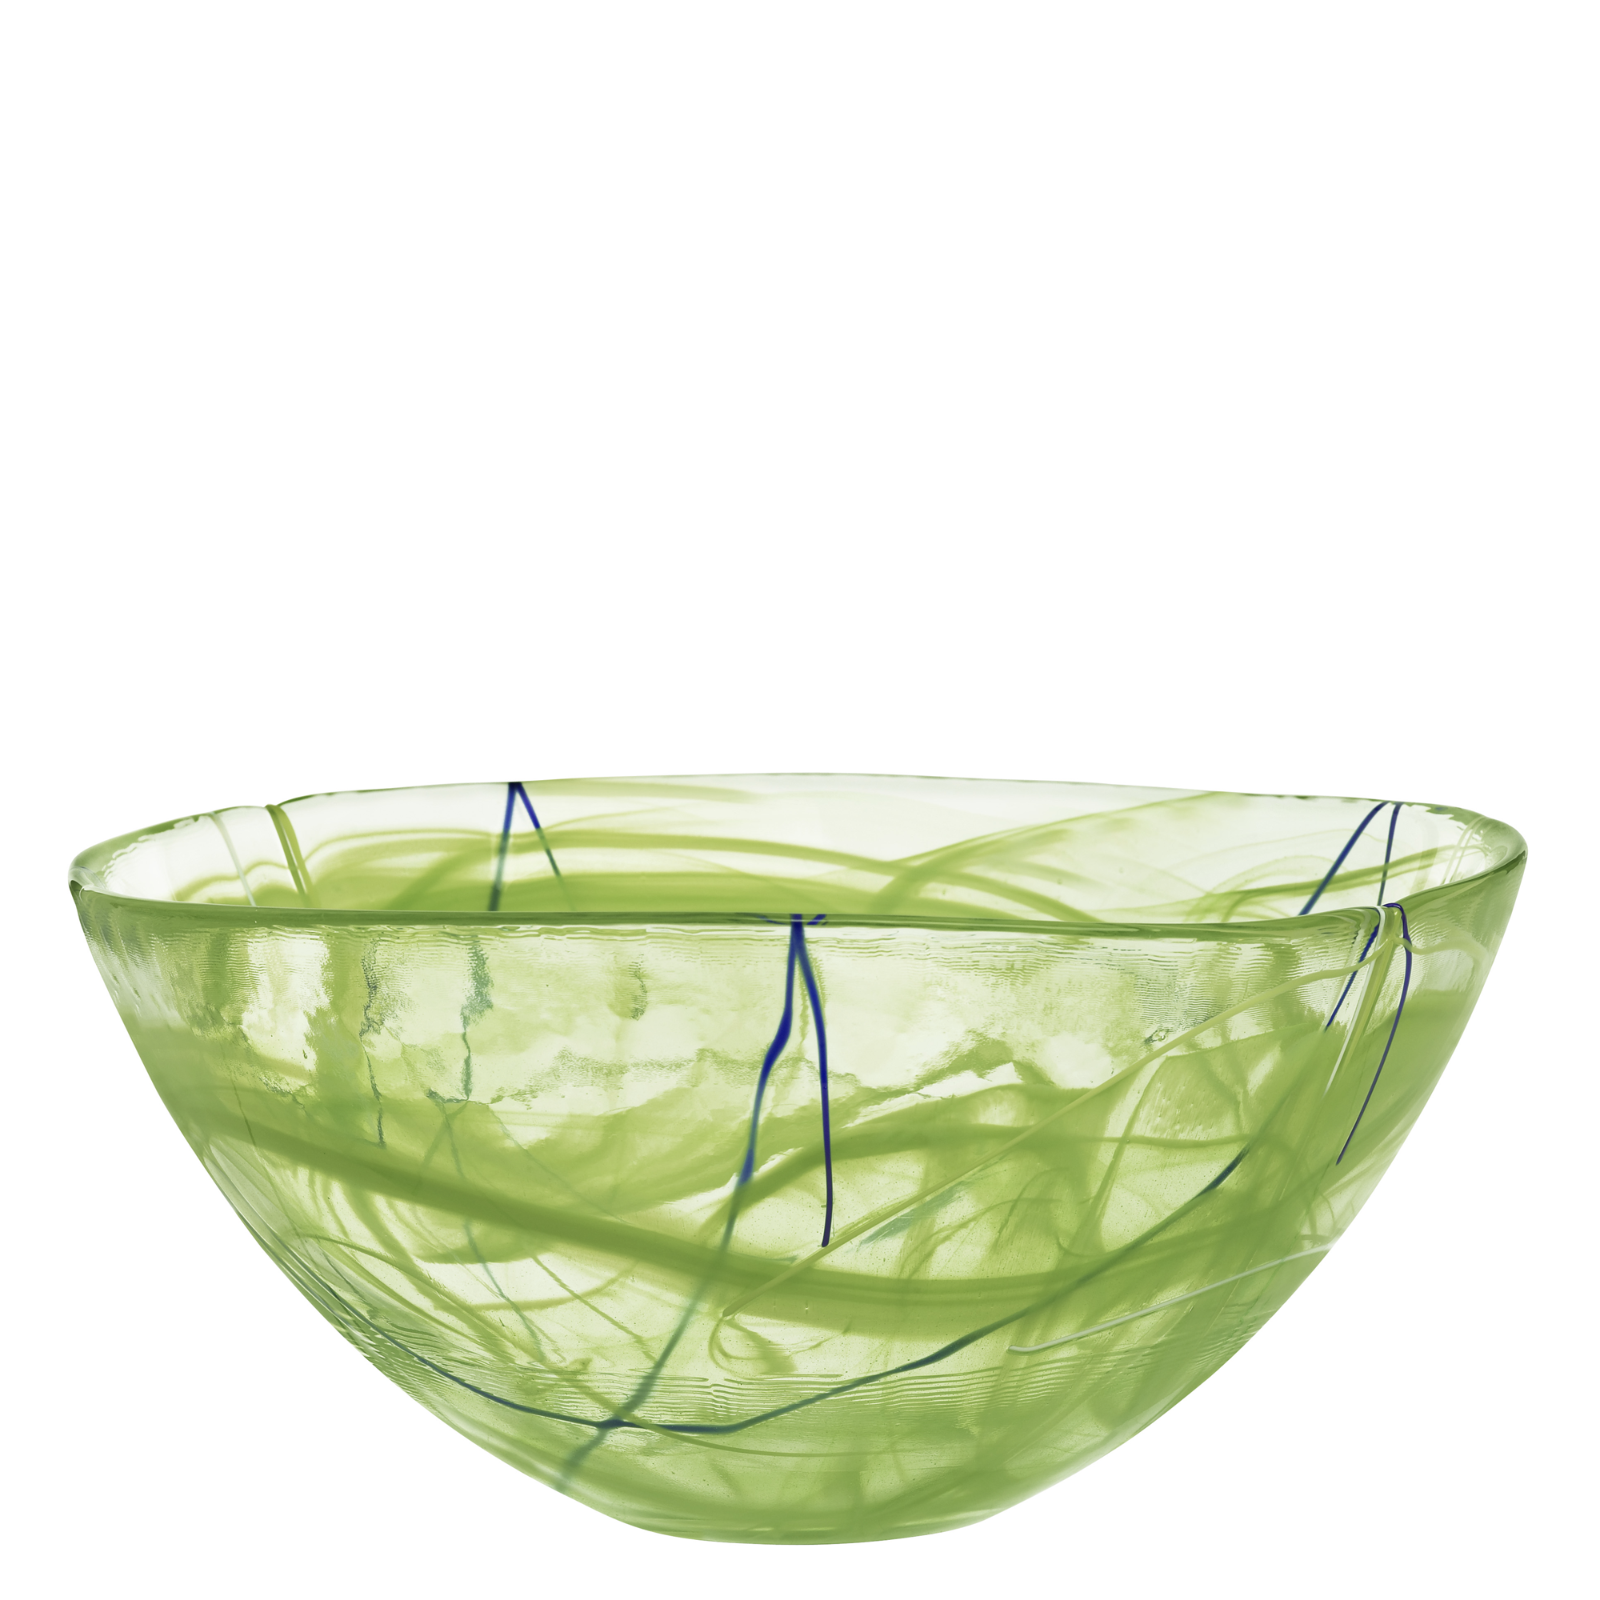 Kosta Boda Serveware Lime Contrast Bowl, 3 Sizes